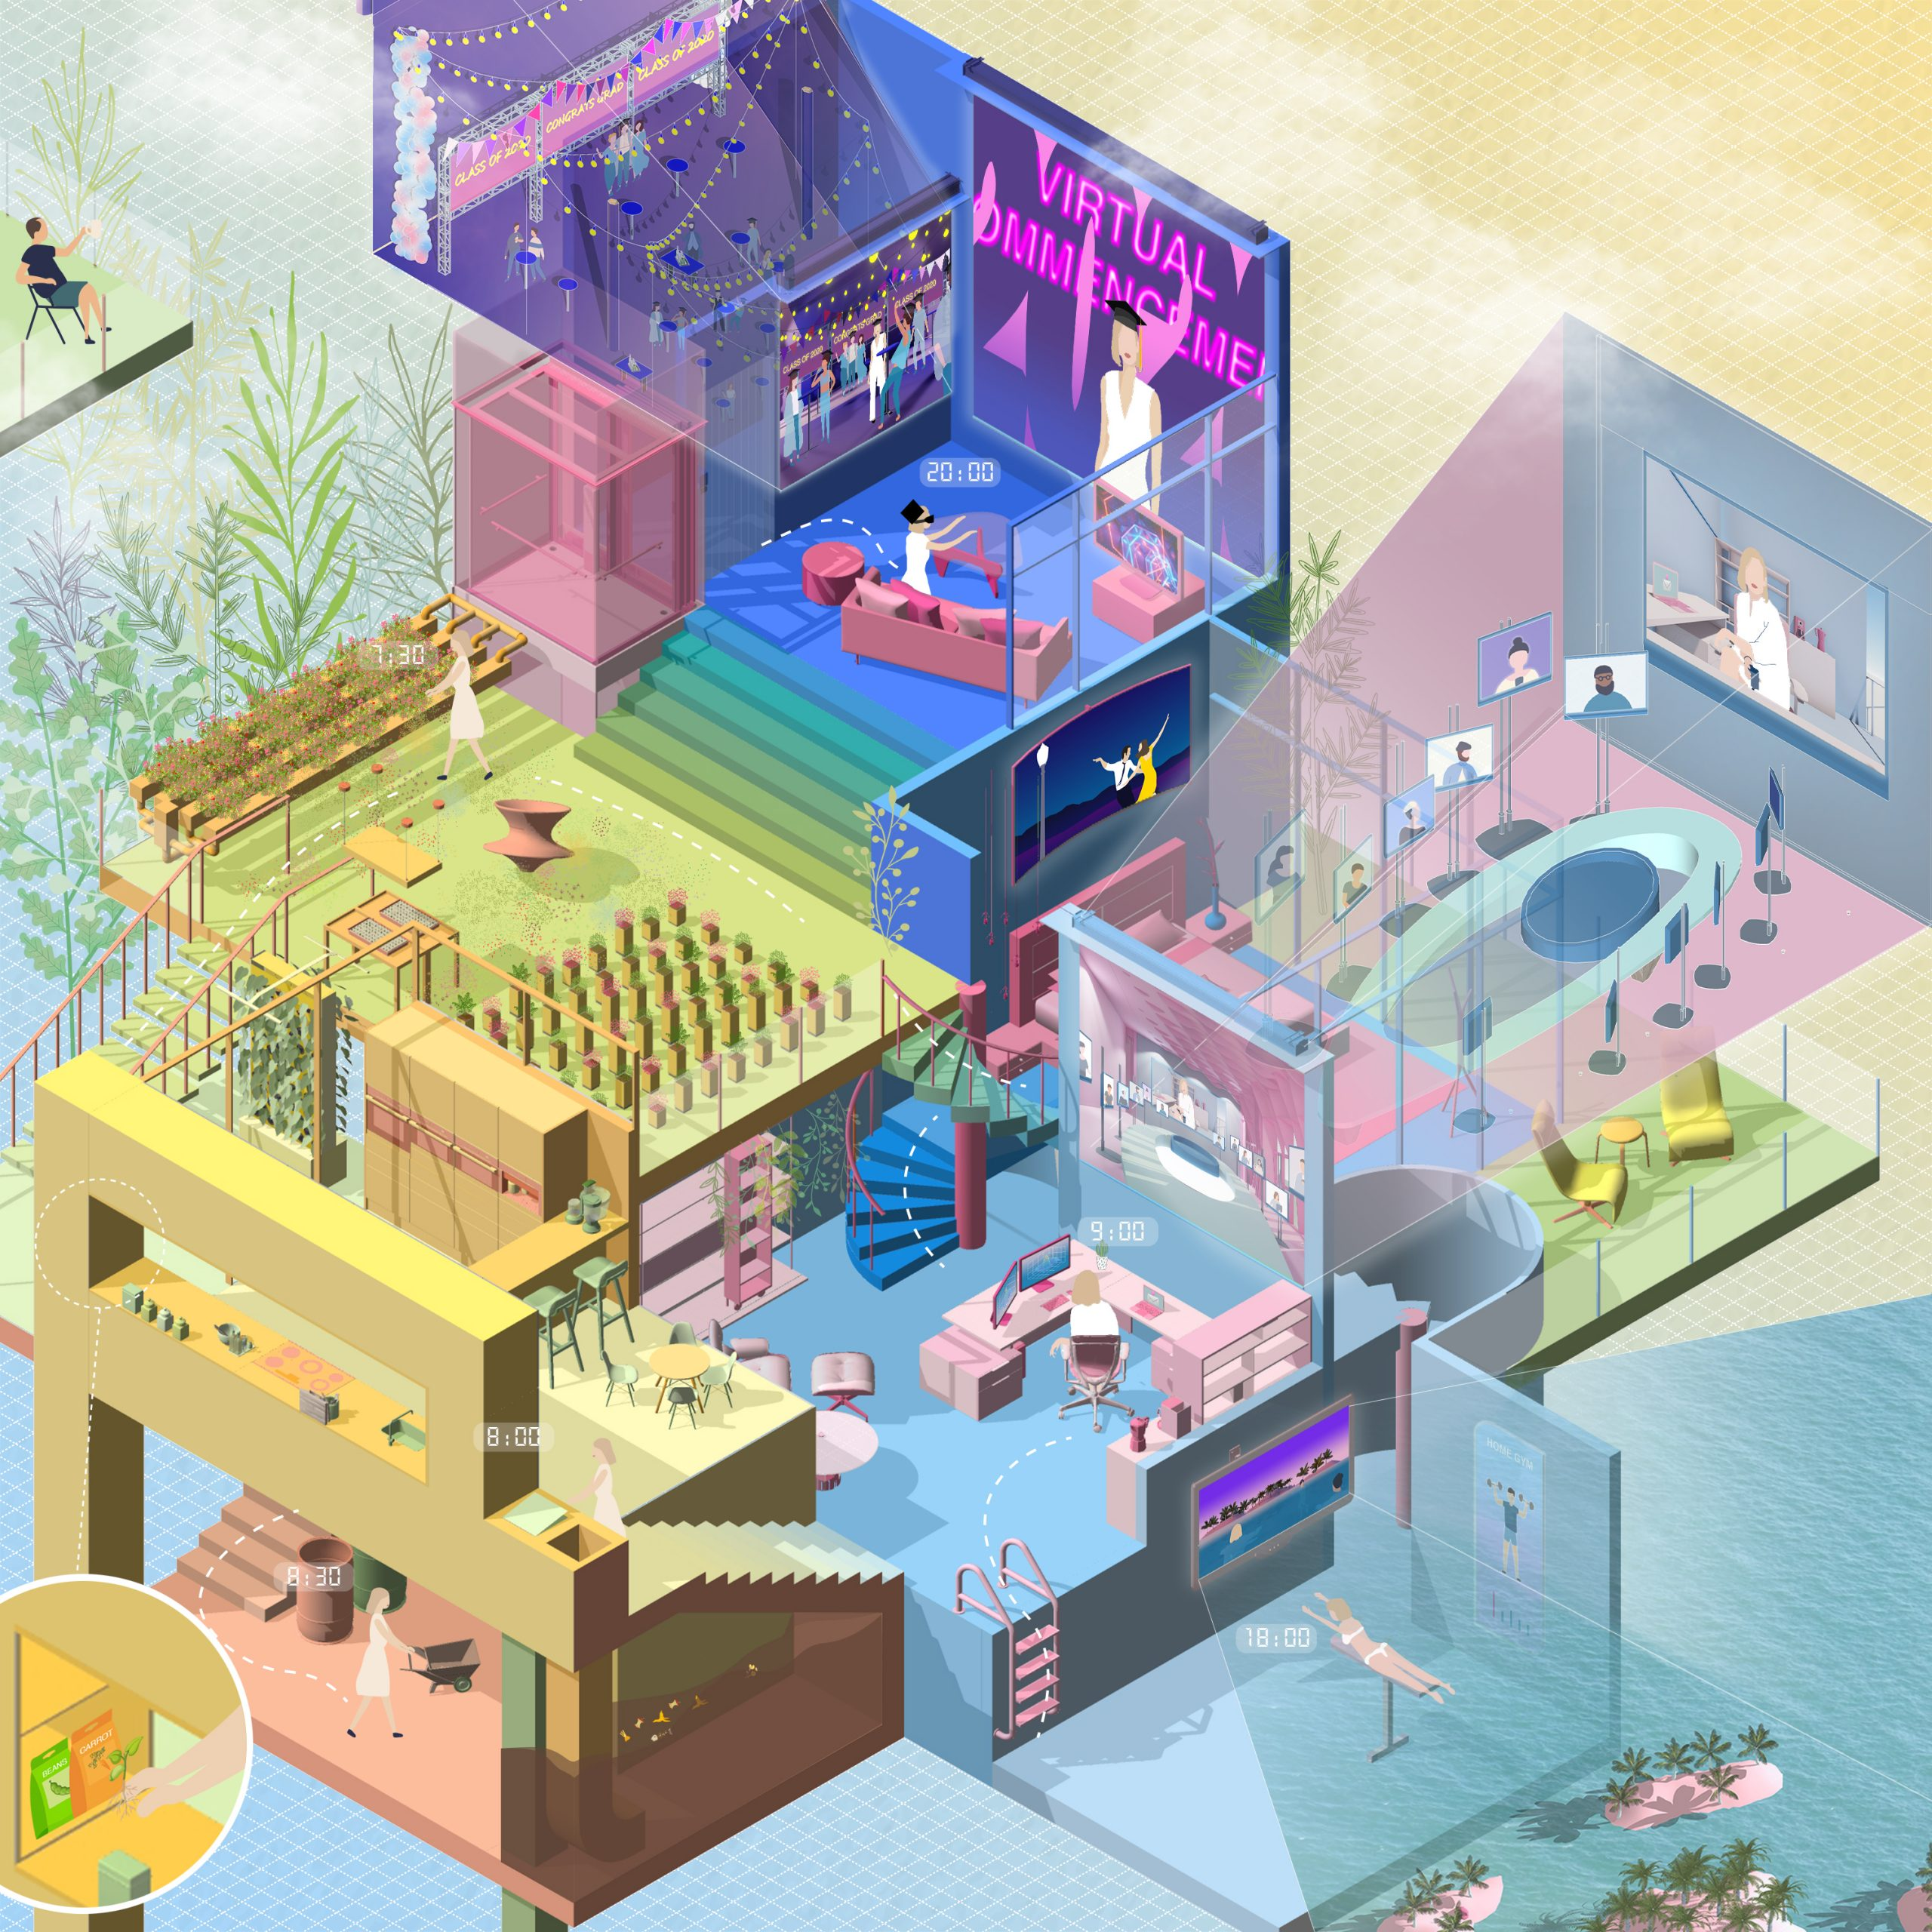 Living in the Manifold - by Yuanyuan Dong & Yue He